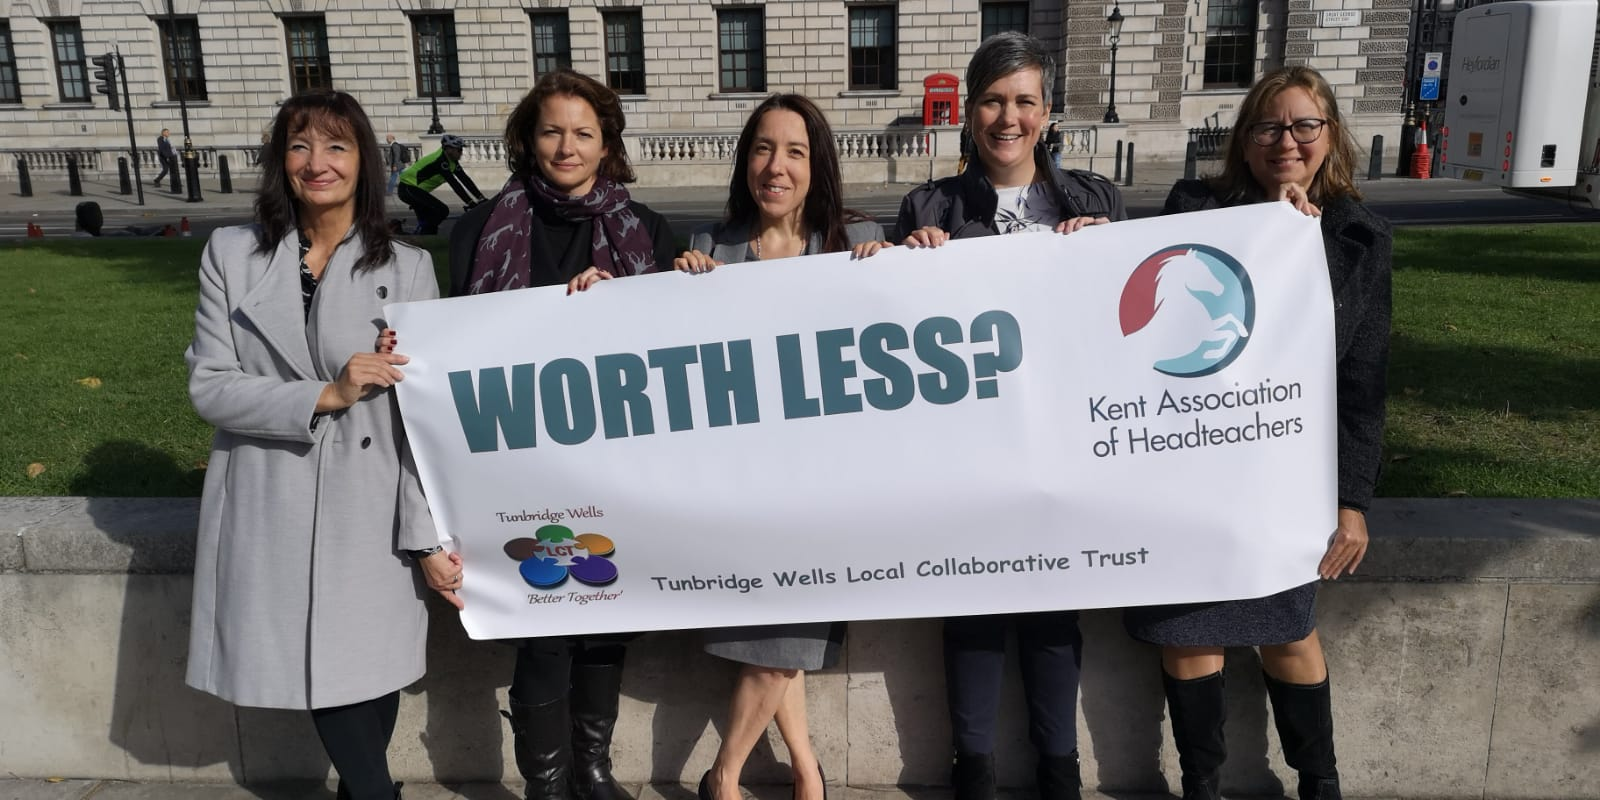 WorthLess Campaign - march to Downing Street 28 September 2018